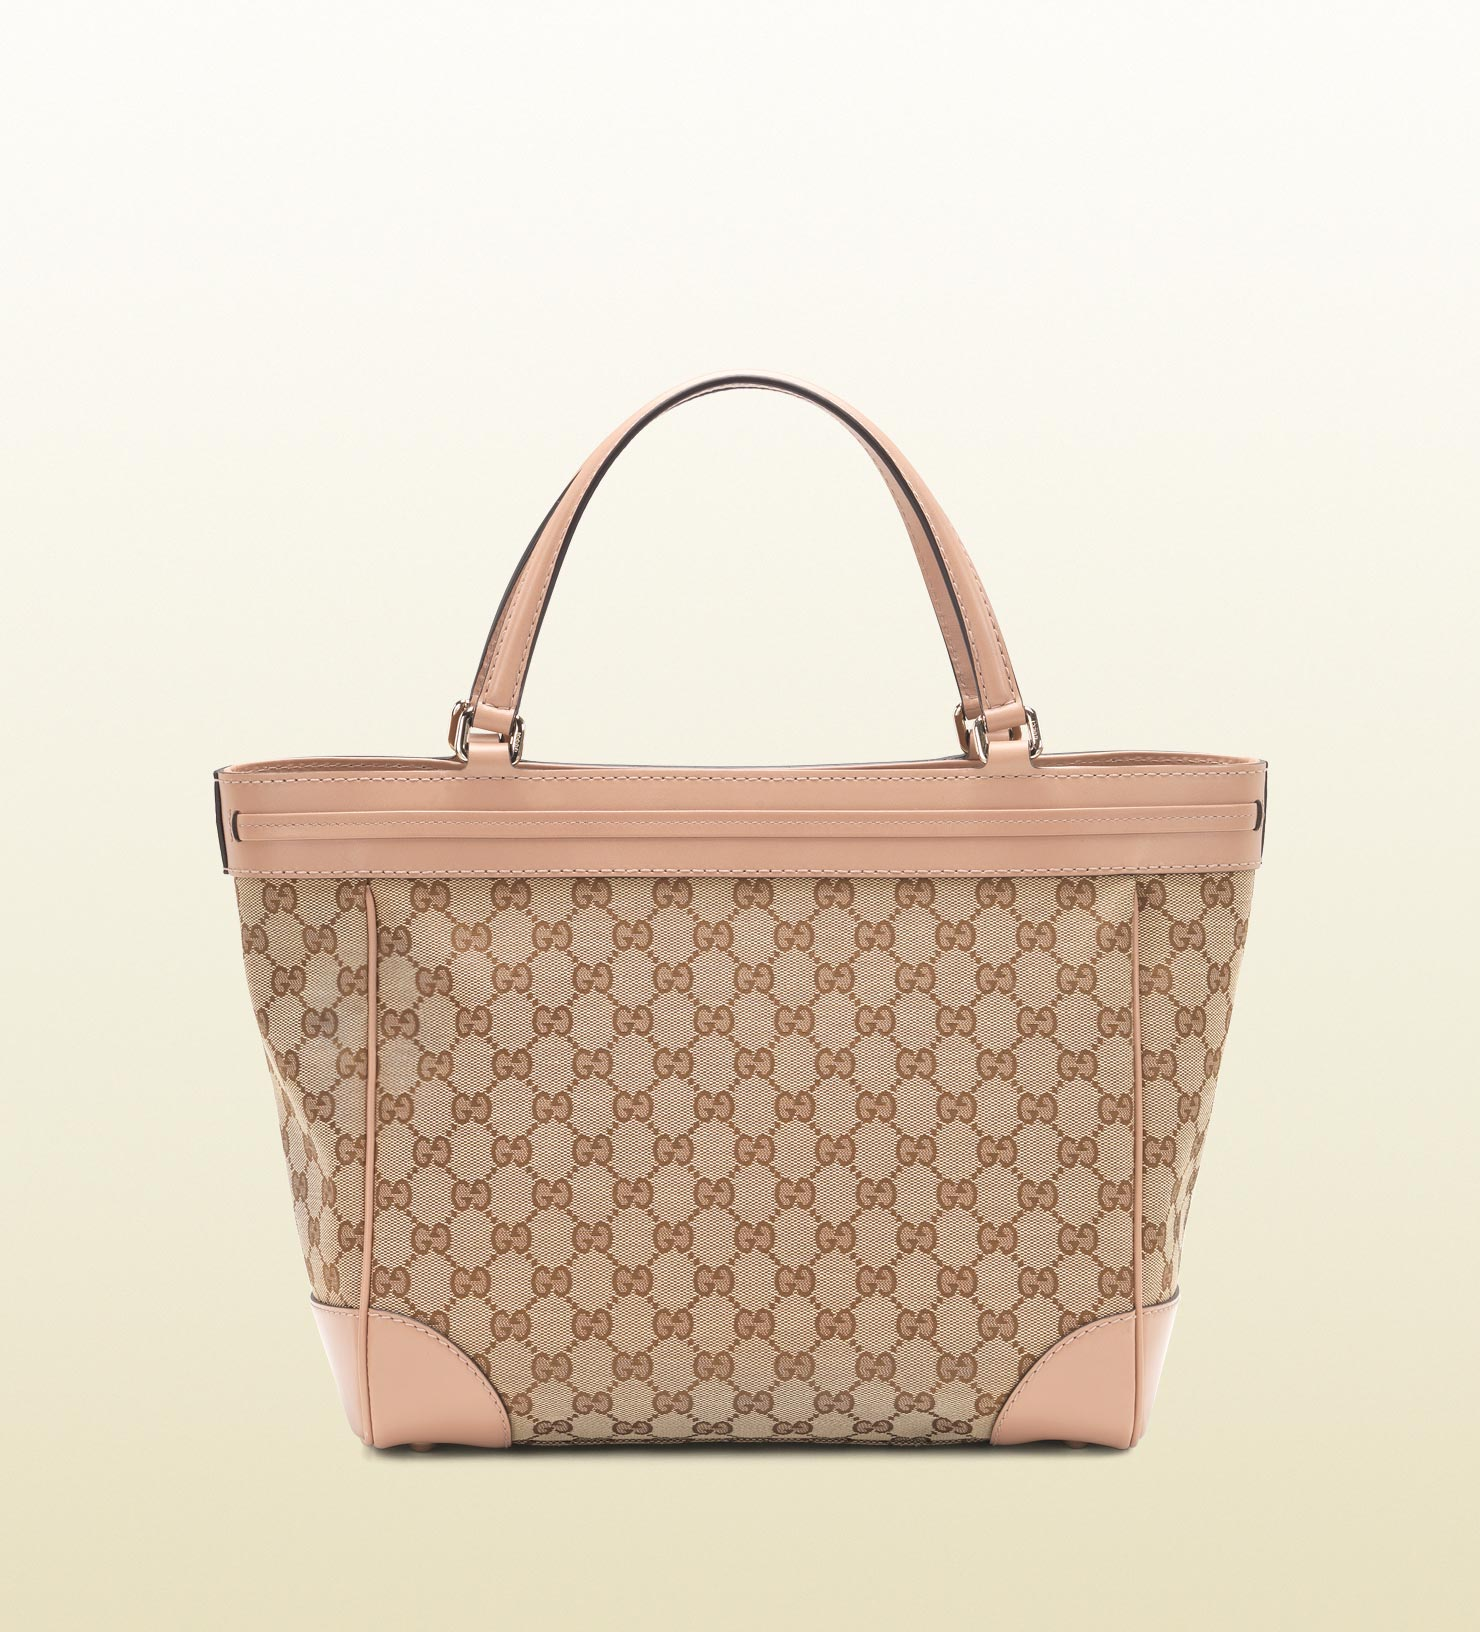 bbbade8ecb3c Gucci Mayfair Original Gg Canvas Bow Detail Tote in Natural - Lyst